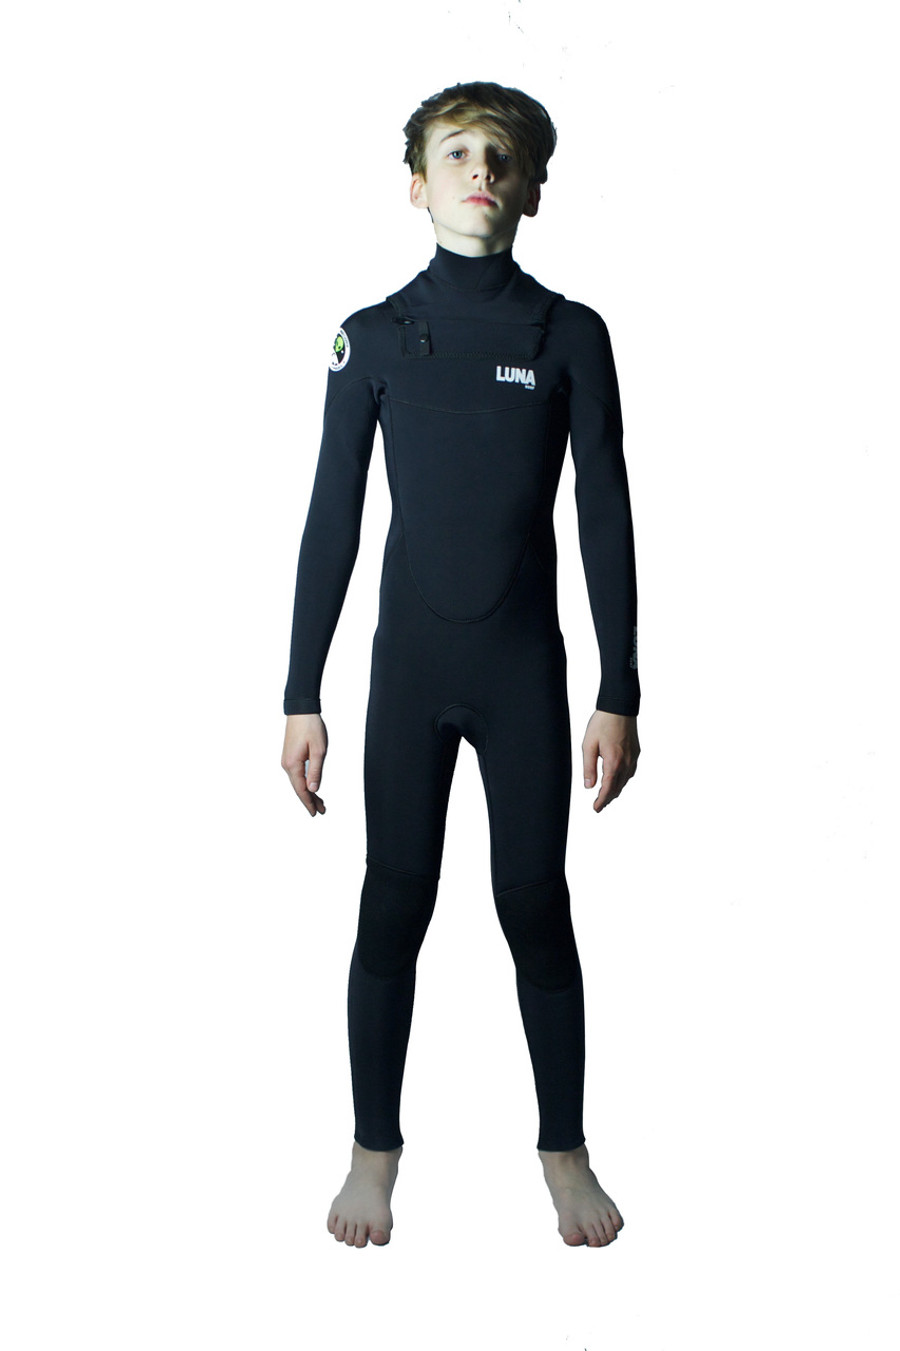 Groms ultimate summer wetsuit.